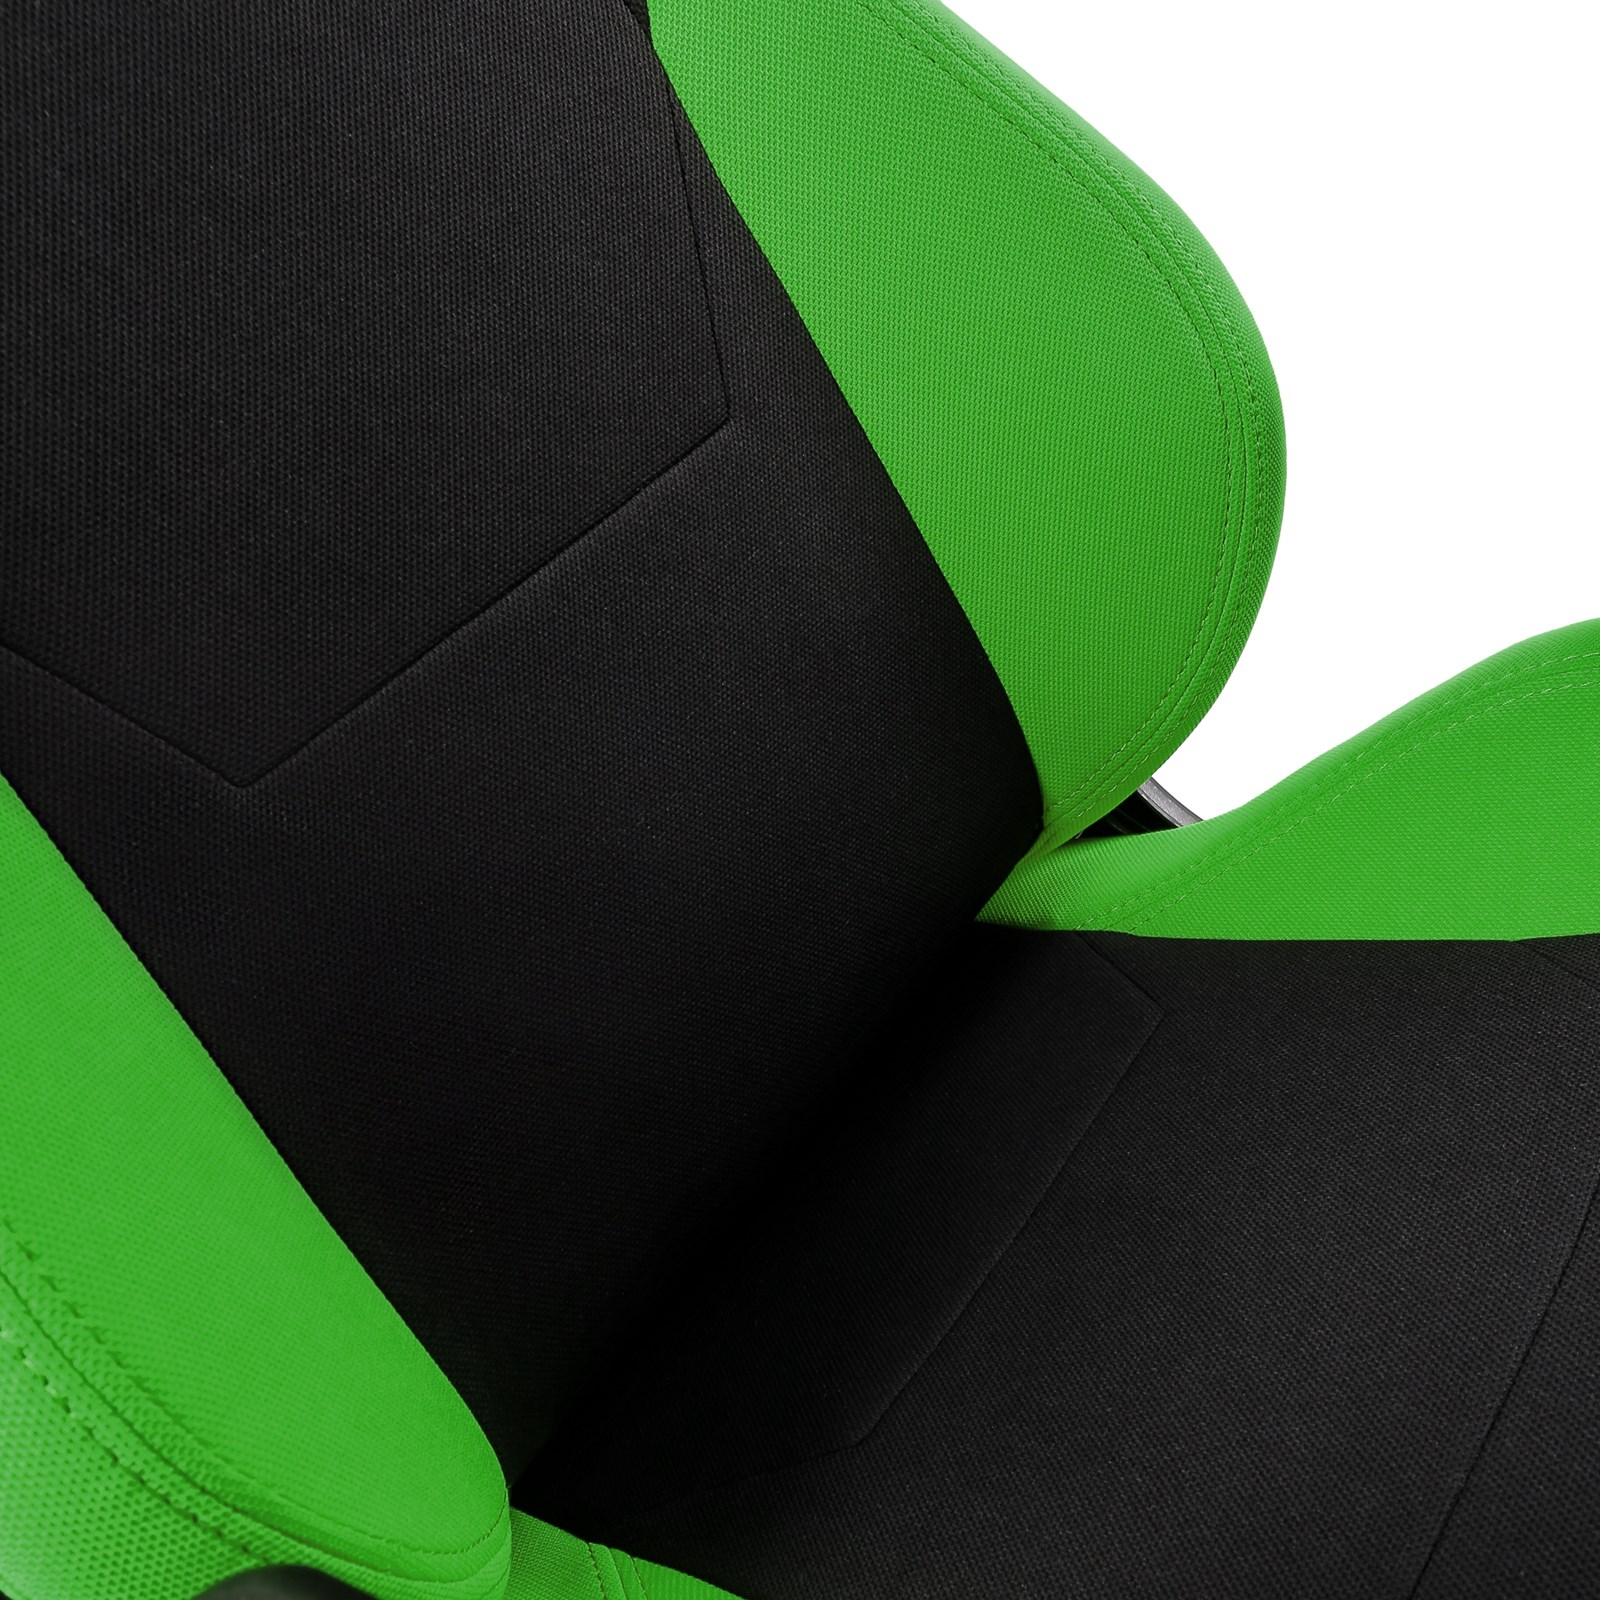 Excellent Nitro Concepts S300 Fabric Gaming Chair Atomic Green Nc Ibusinesslaw Wood Chair Design Ideas Ibusinesslaworg